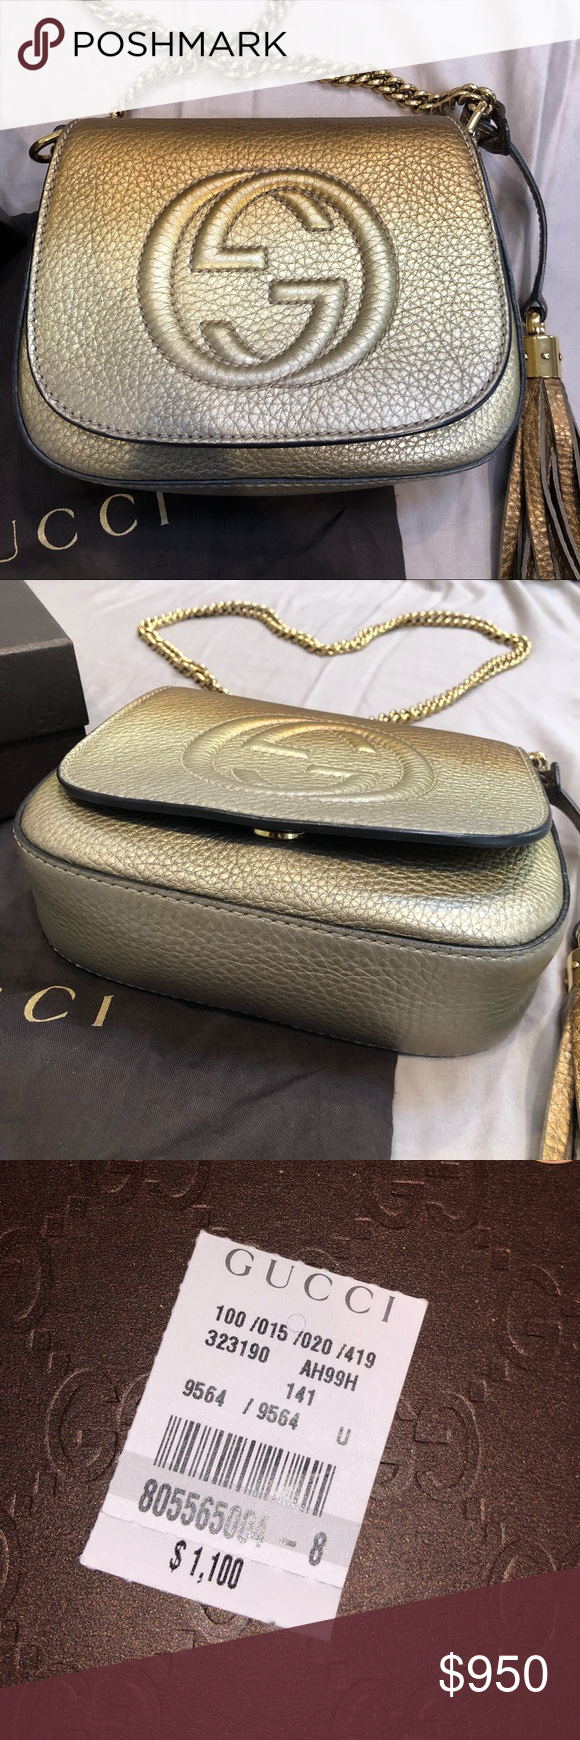 bc793f0ebe36c6 Gucci gold bag This is a small ombré gold Gucci bag/purse. I still ...